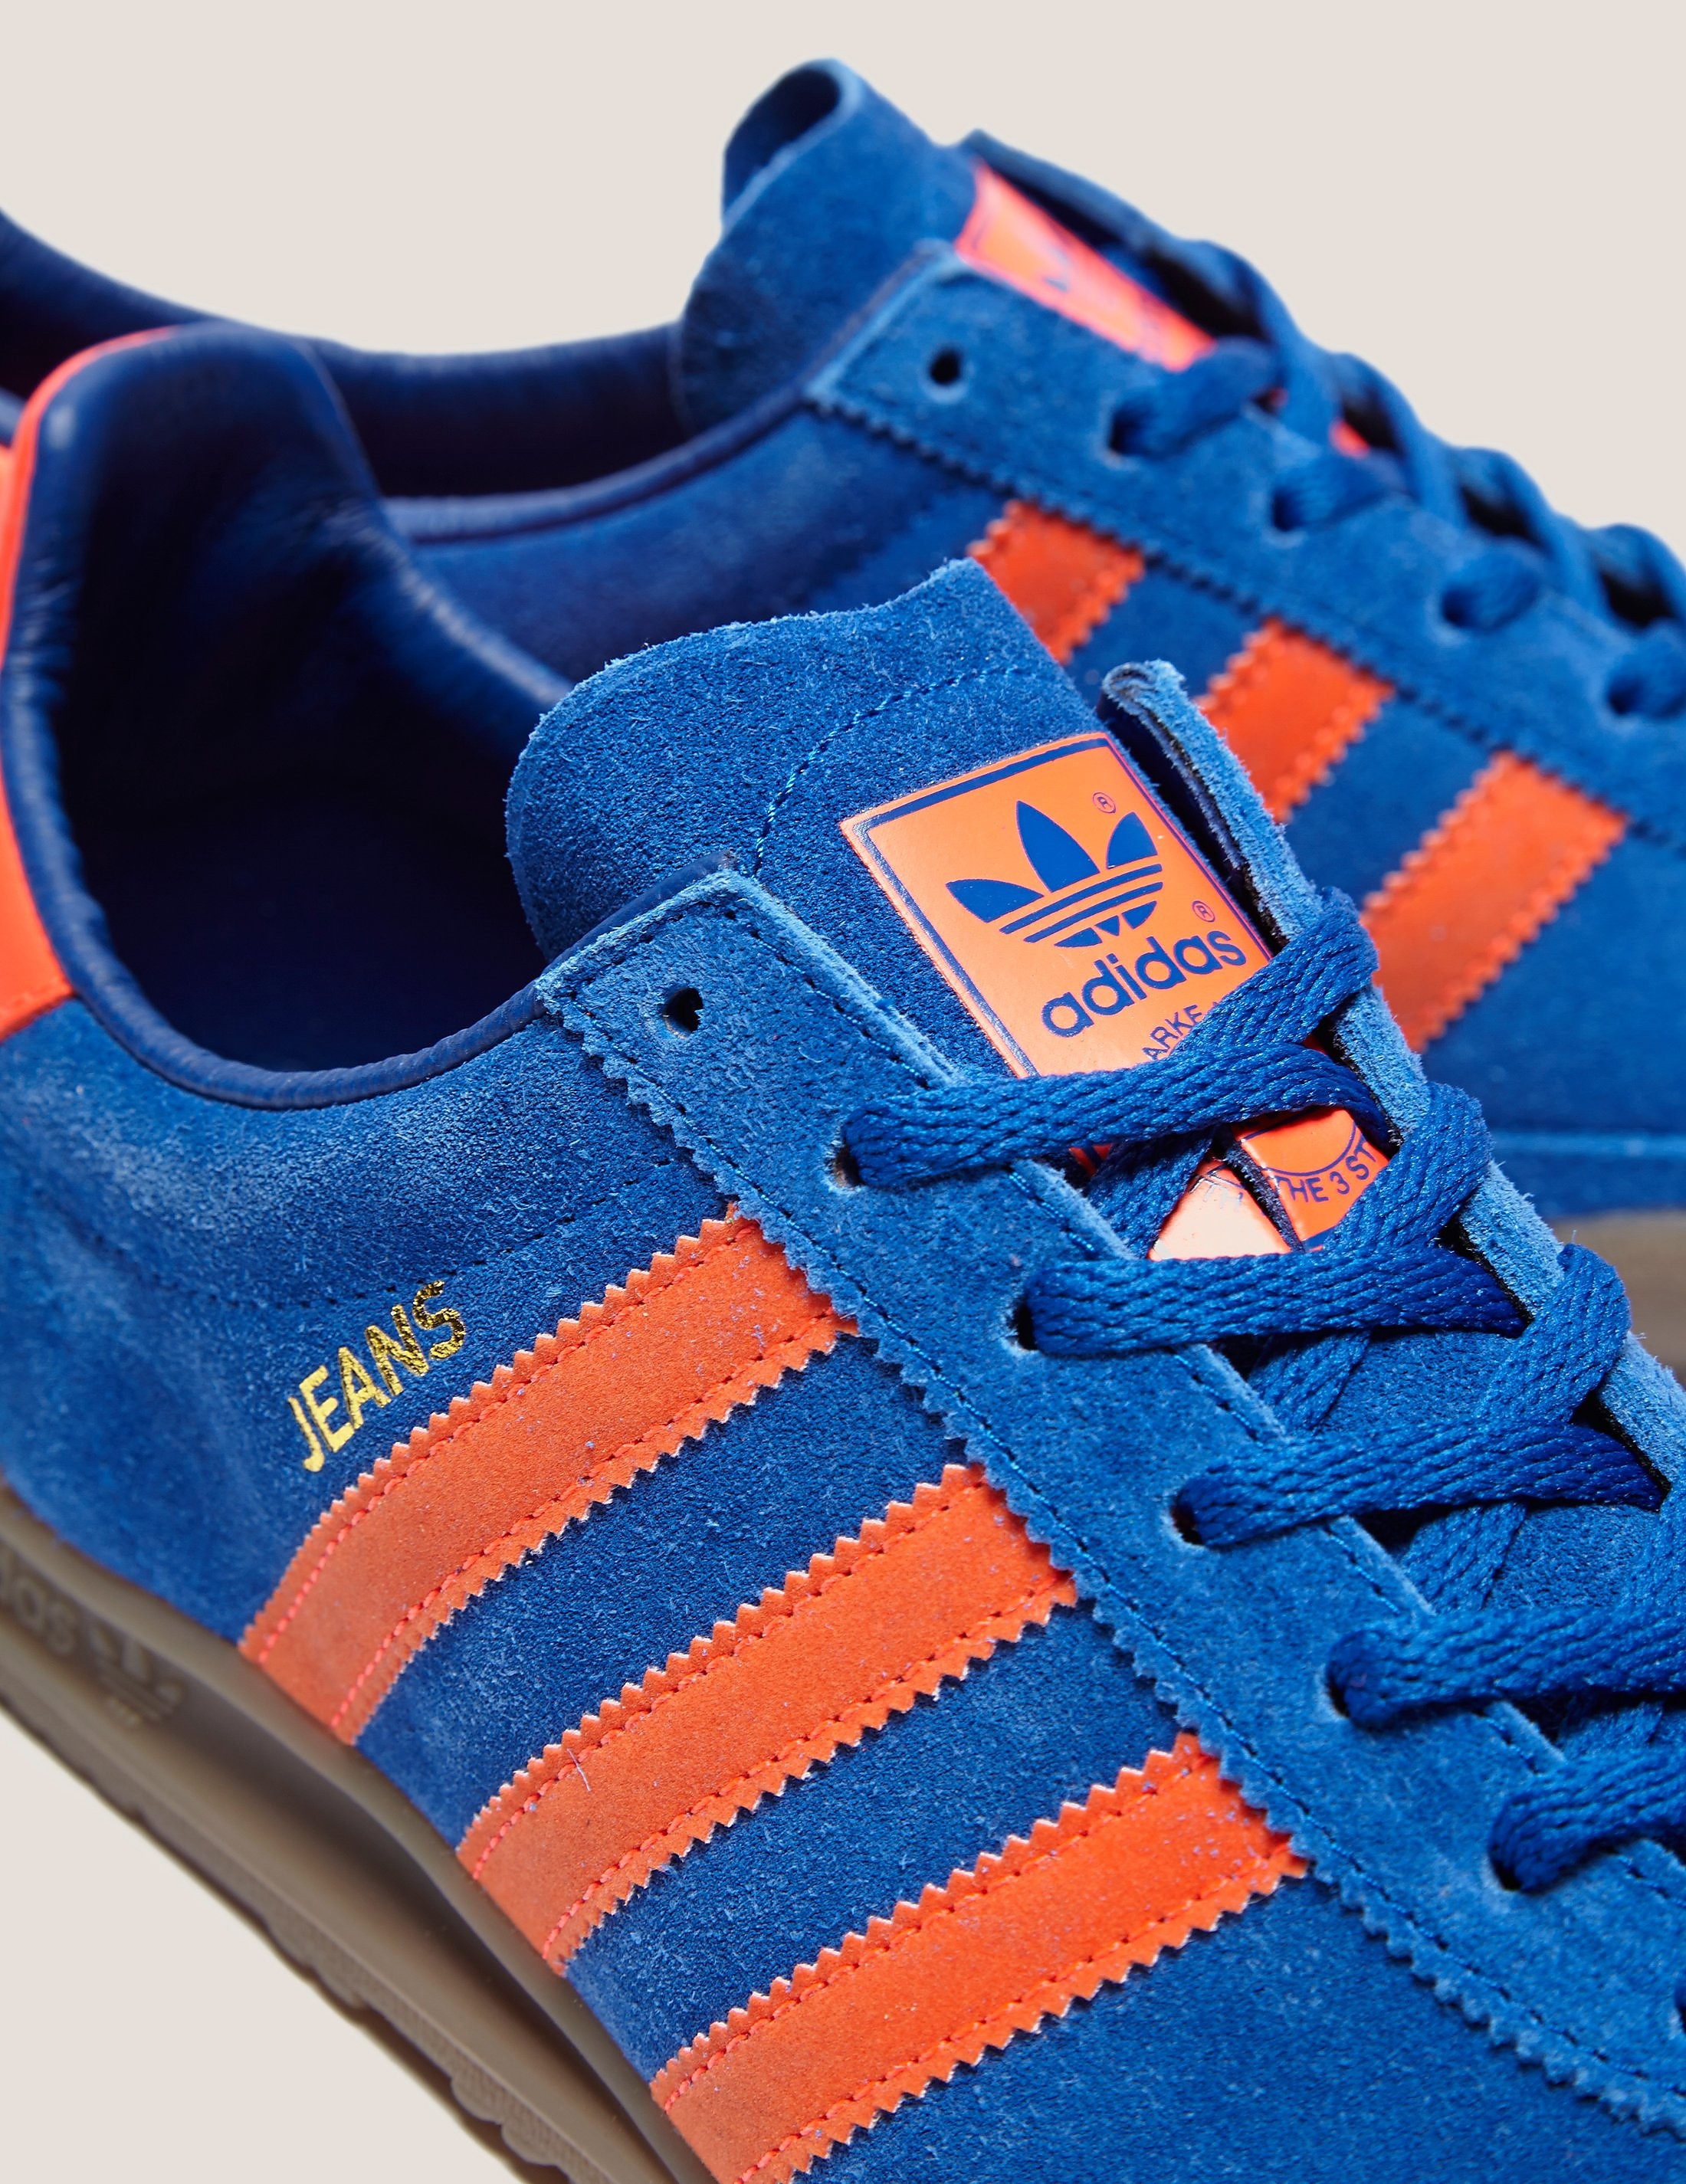 adidas Originals Jeans 'OG' Pack